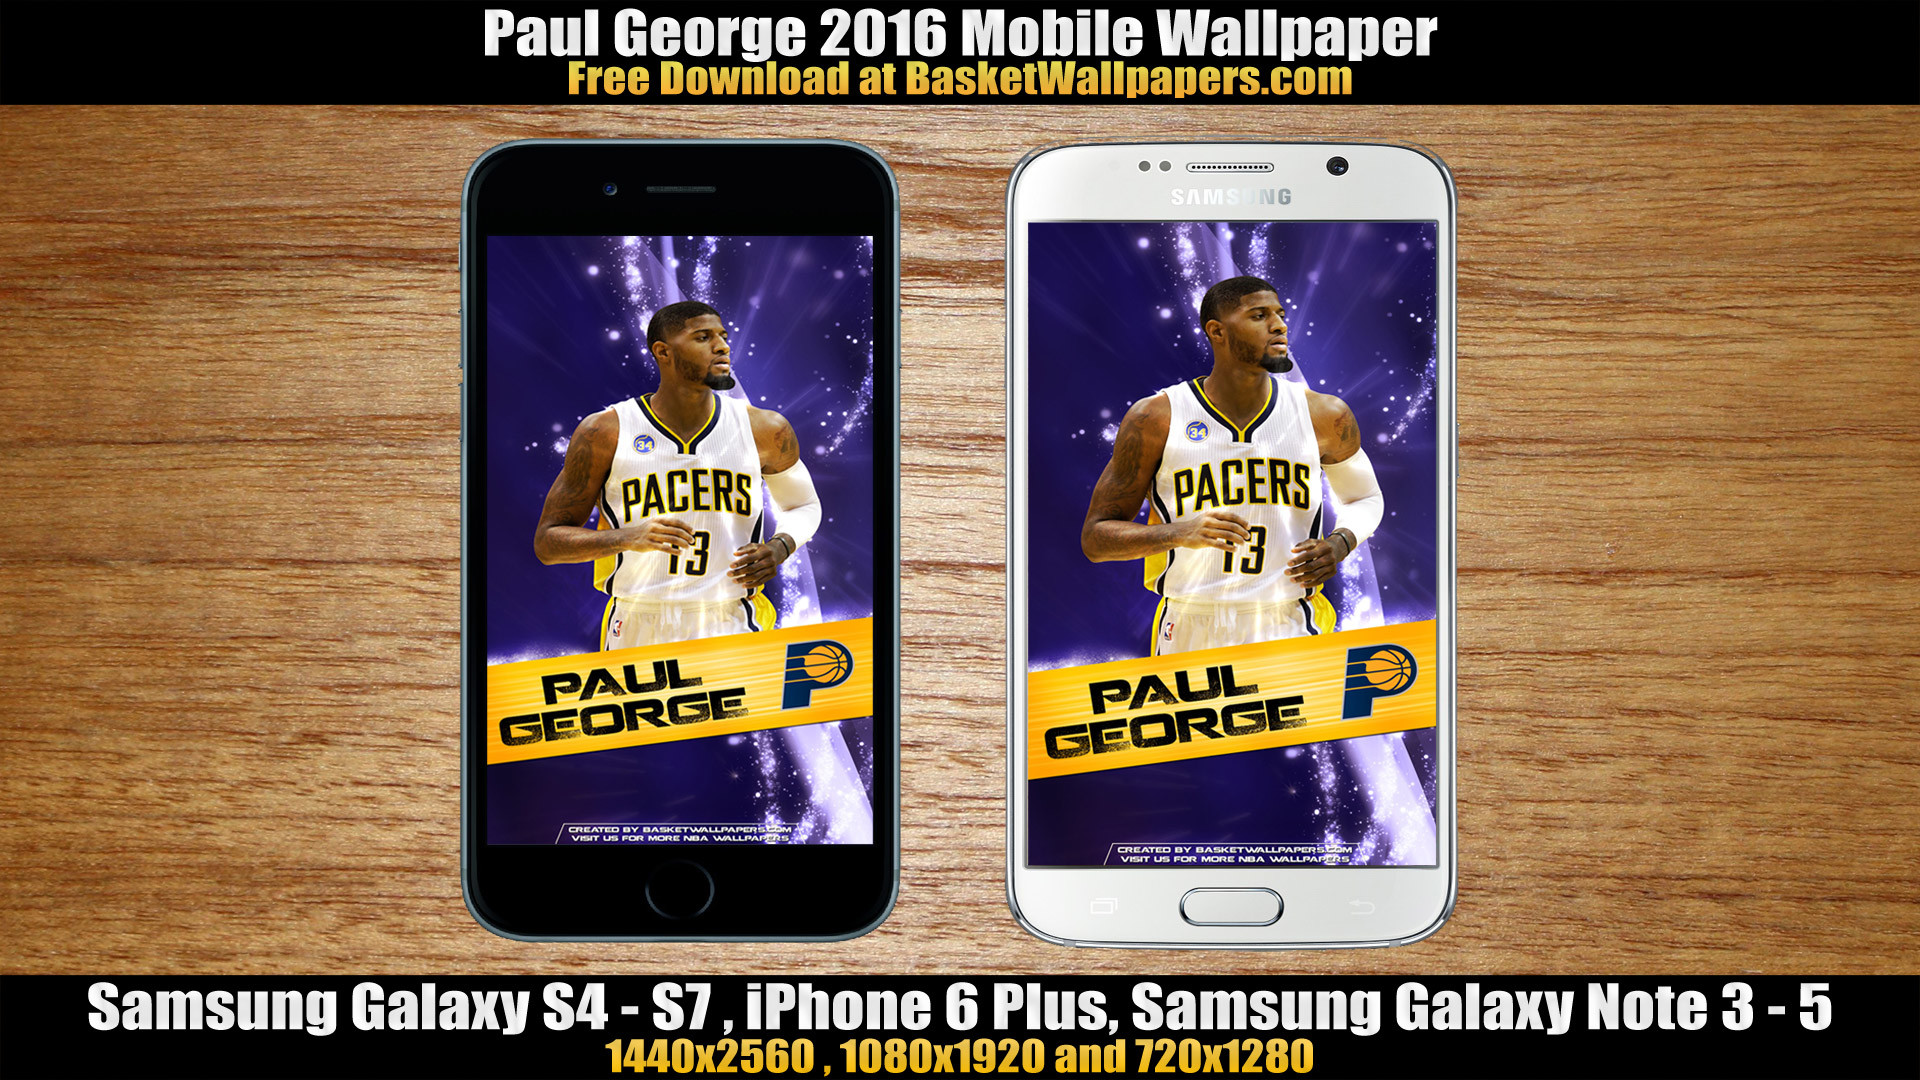 1920x1080 Paul George Indiana Pacers 2016 Mobile Wallpaper